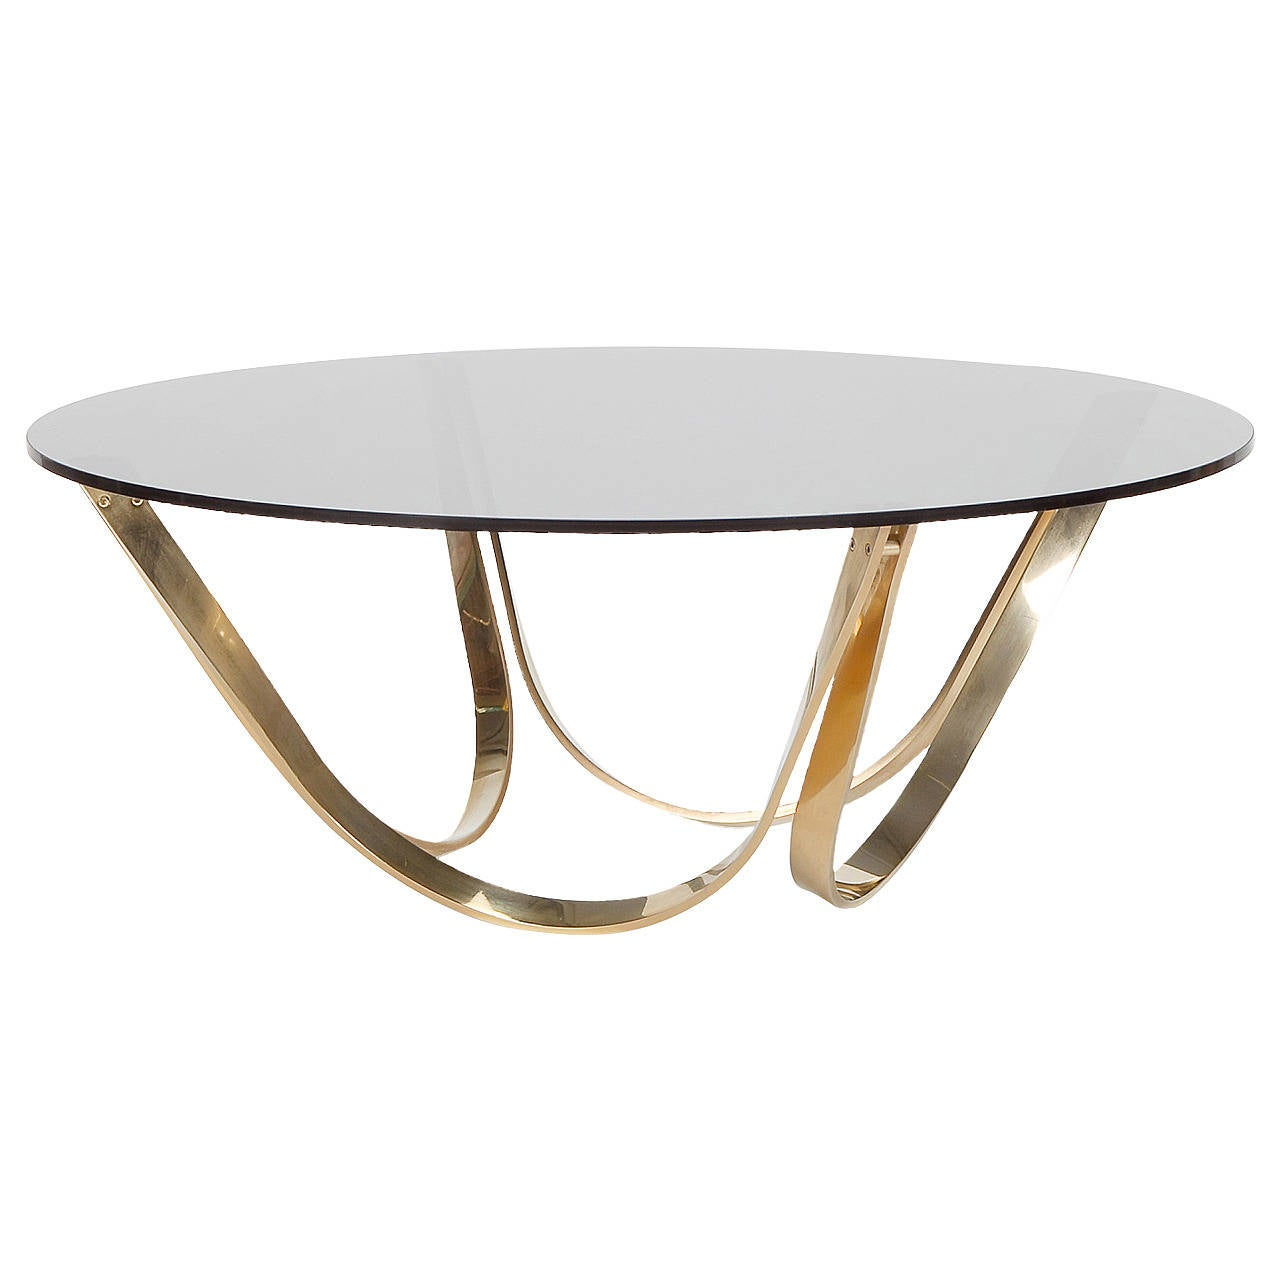 Brass And Smoked Glass Coffee Table By Roger Sprunger For